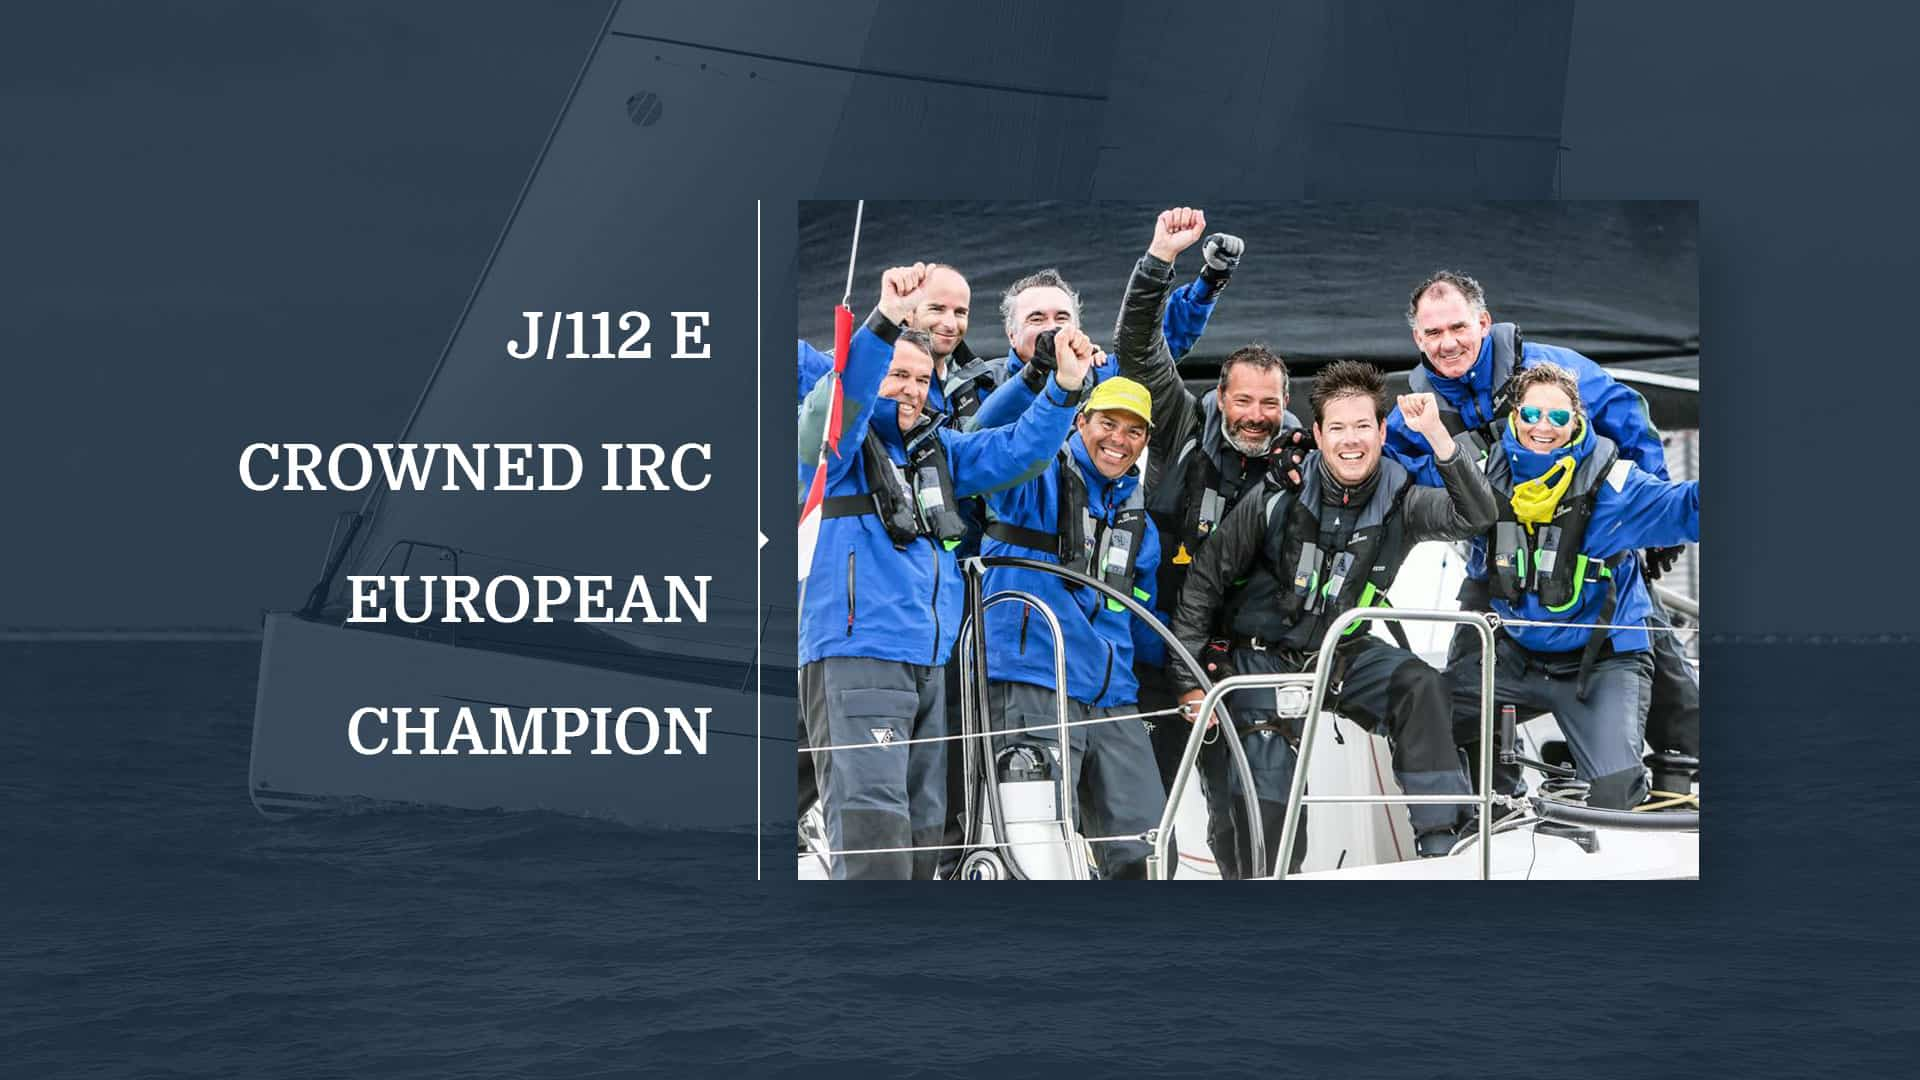 The J/112 Elegance wins the European IRC Championship